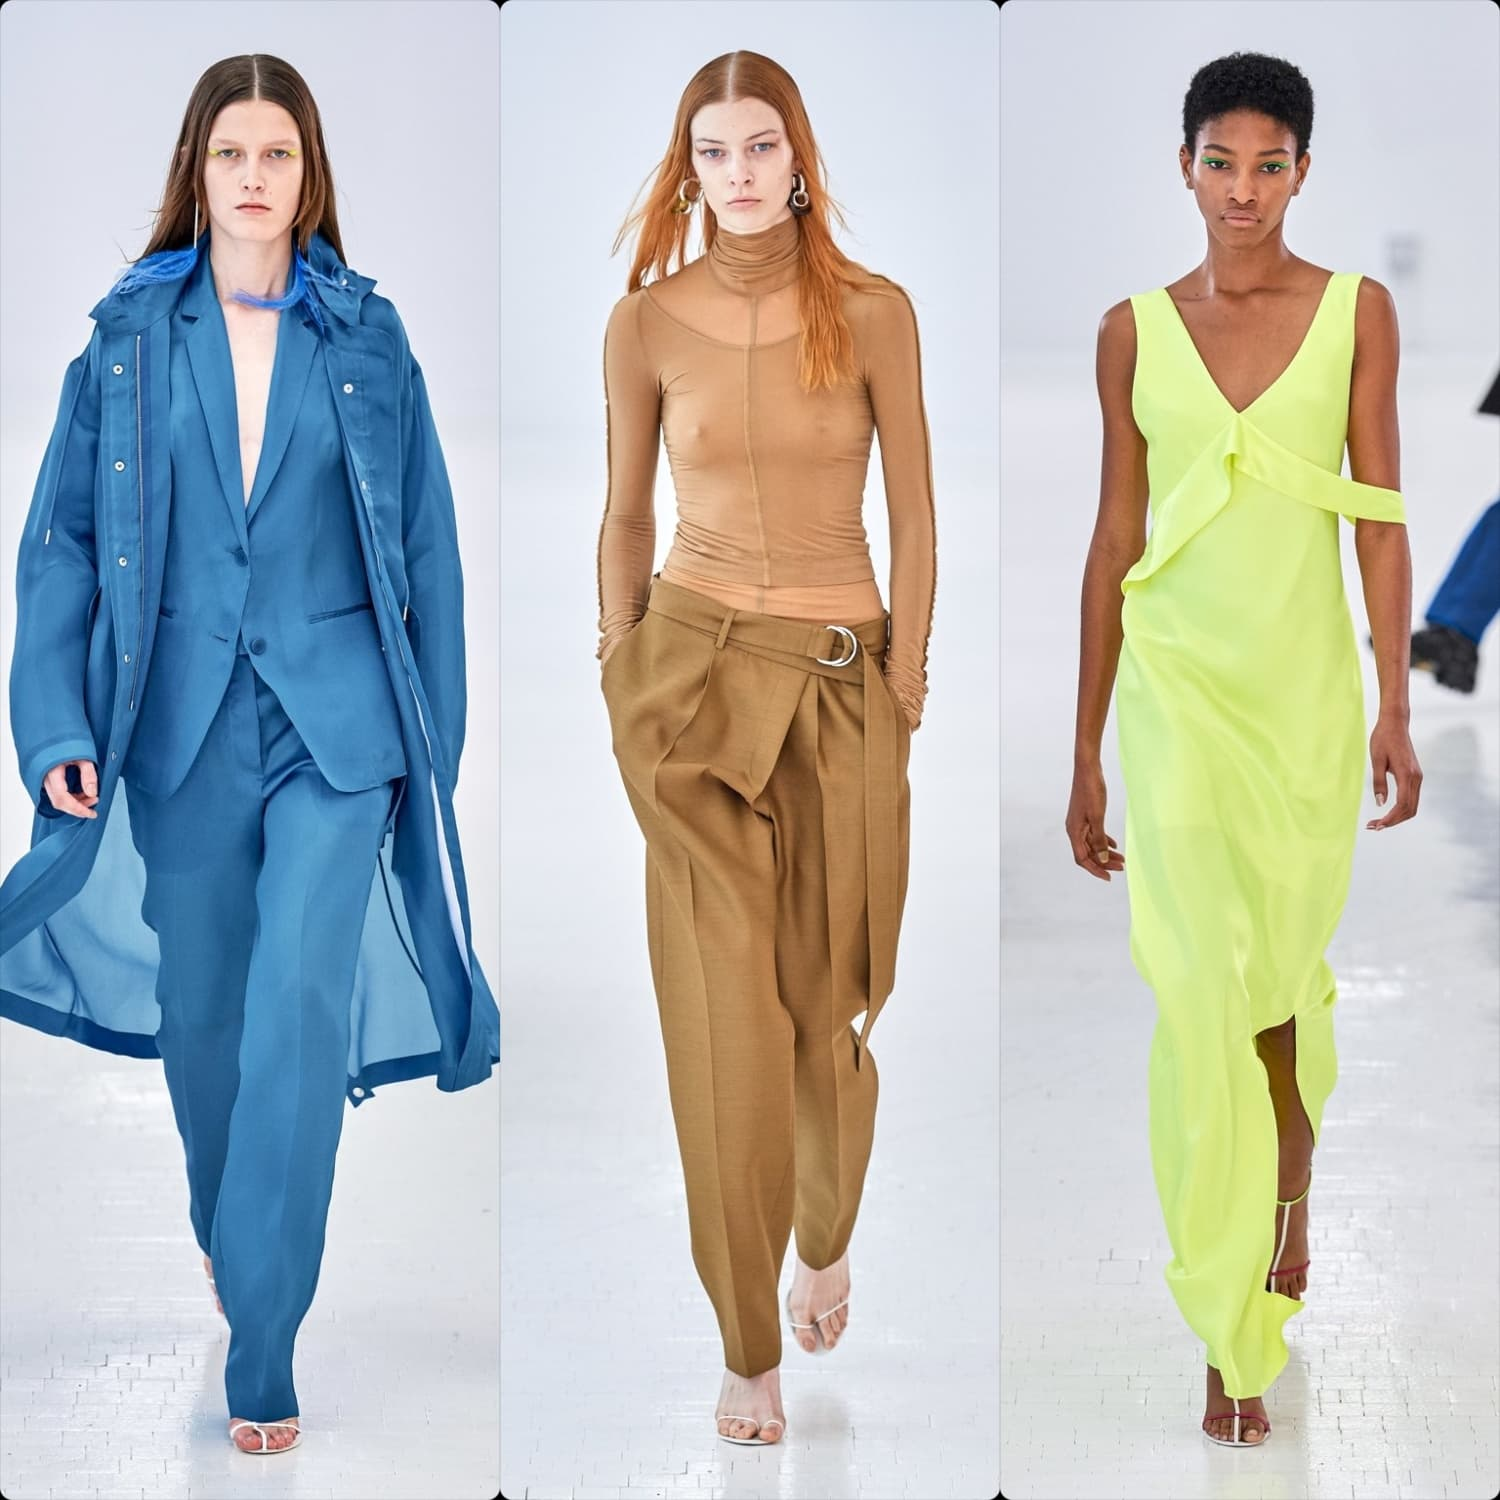 Helmut Lang Spring Summer 2020 New York. RUNWAY MAGAZINE ® Collections. RUNWAY NOW / RUNWAY NEW